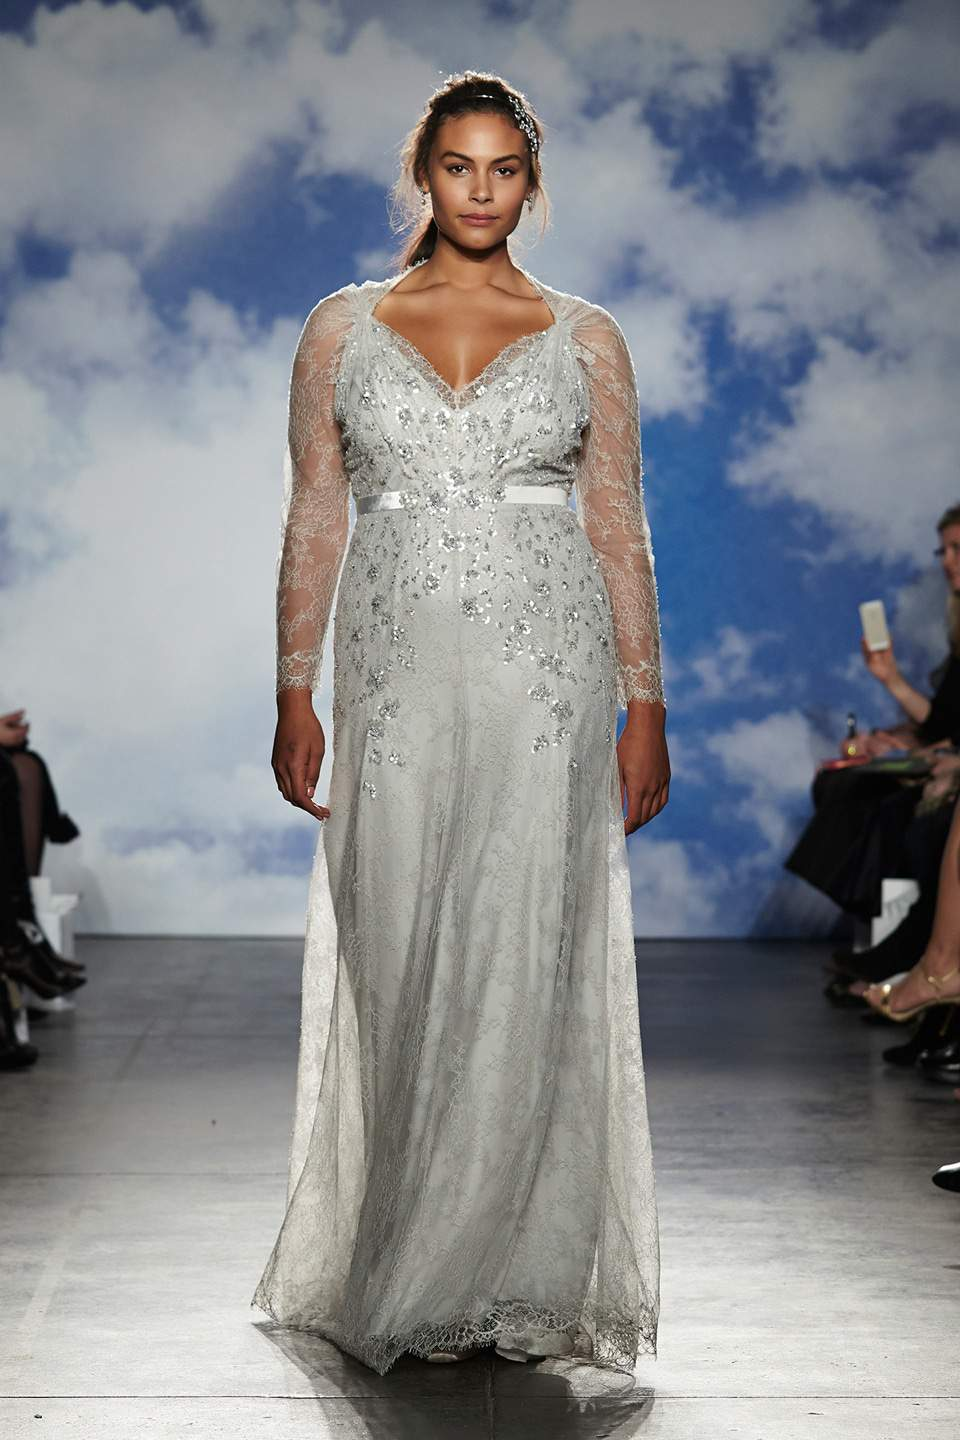 Jenny Packham 2015 Bridal Collection - Marquita Pring